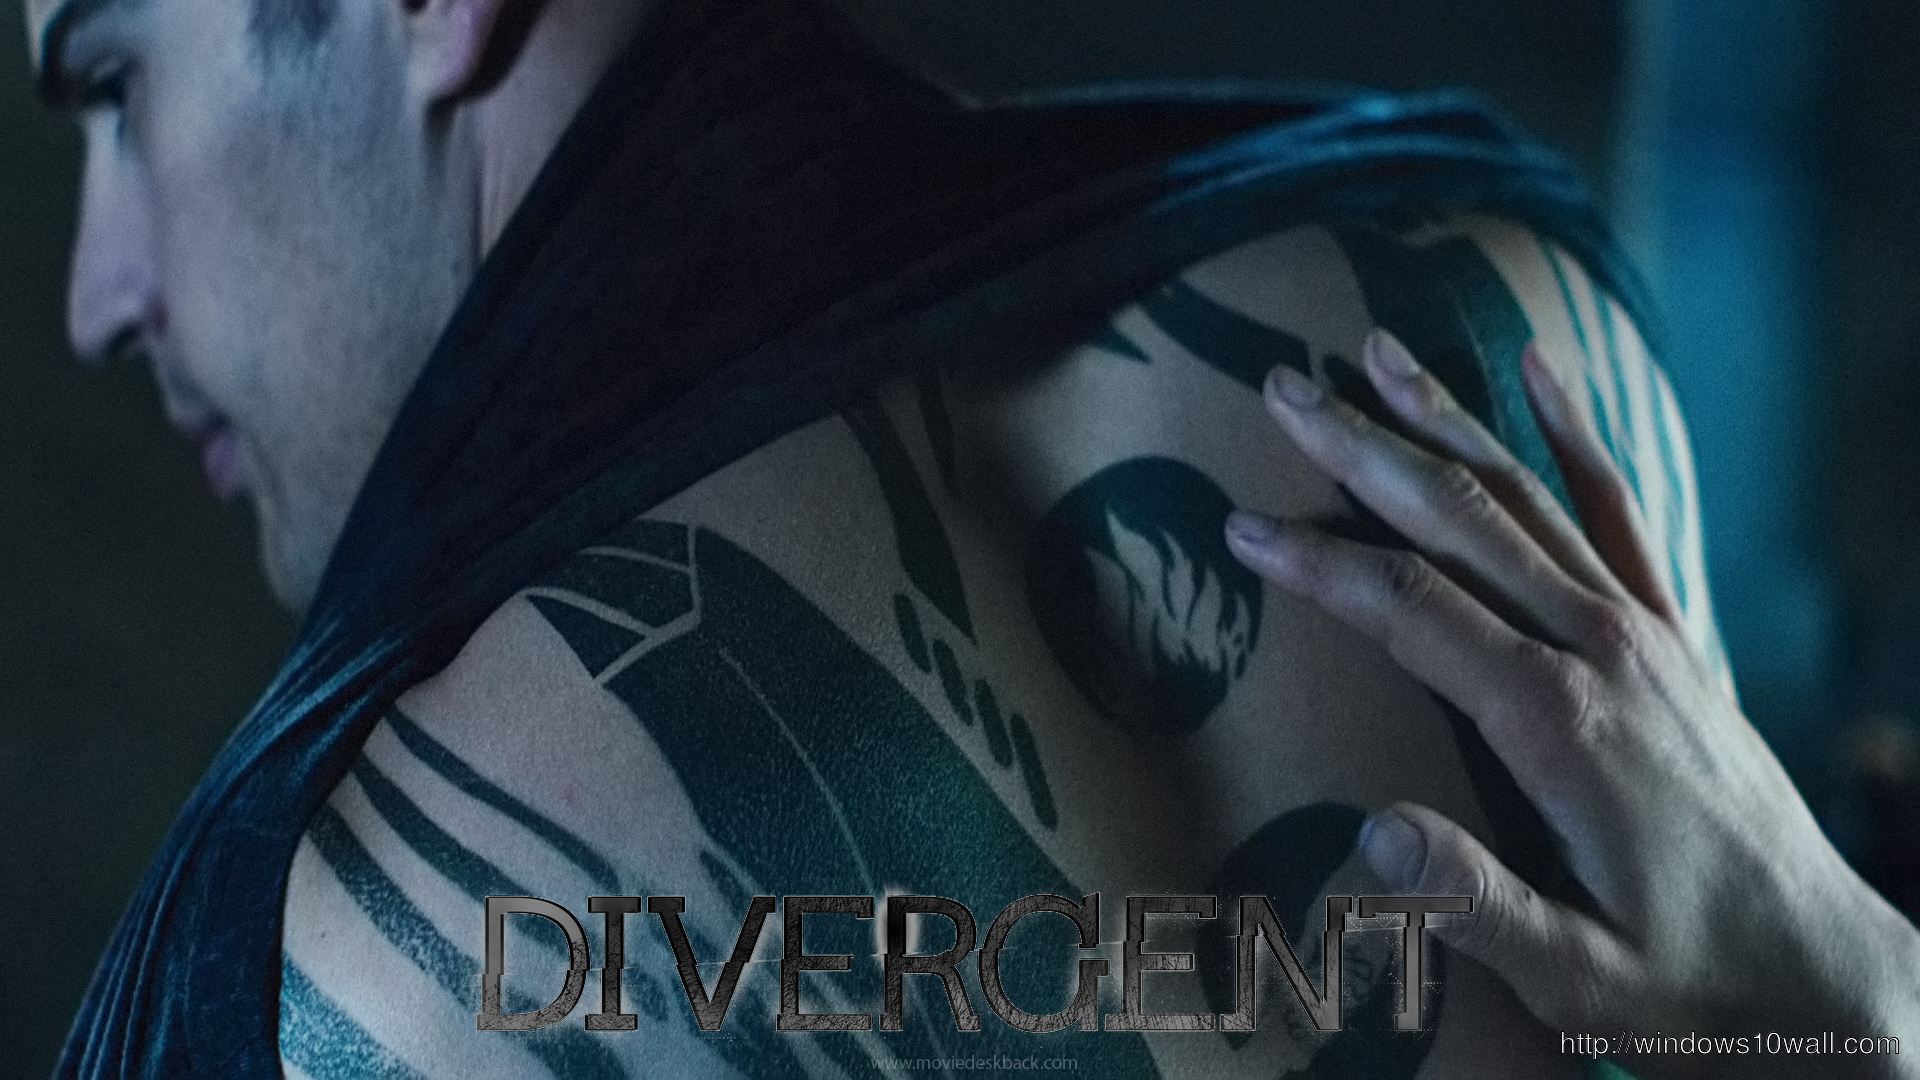 theo-james-as-four--divergent-movie-ideas-background-wallpaper